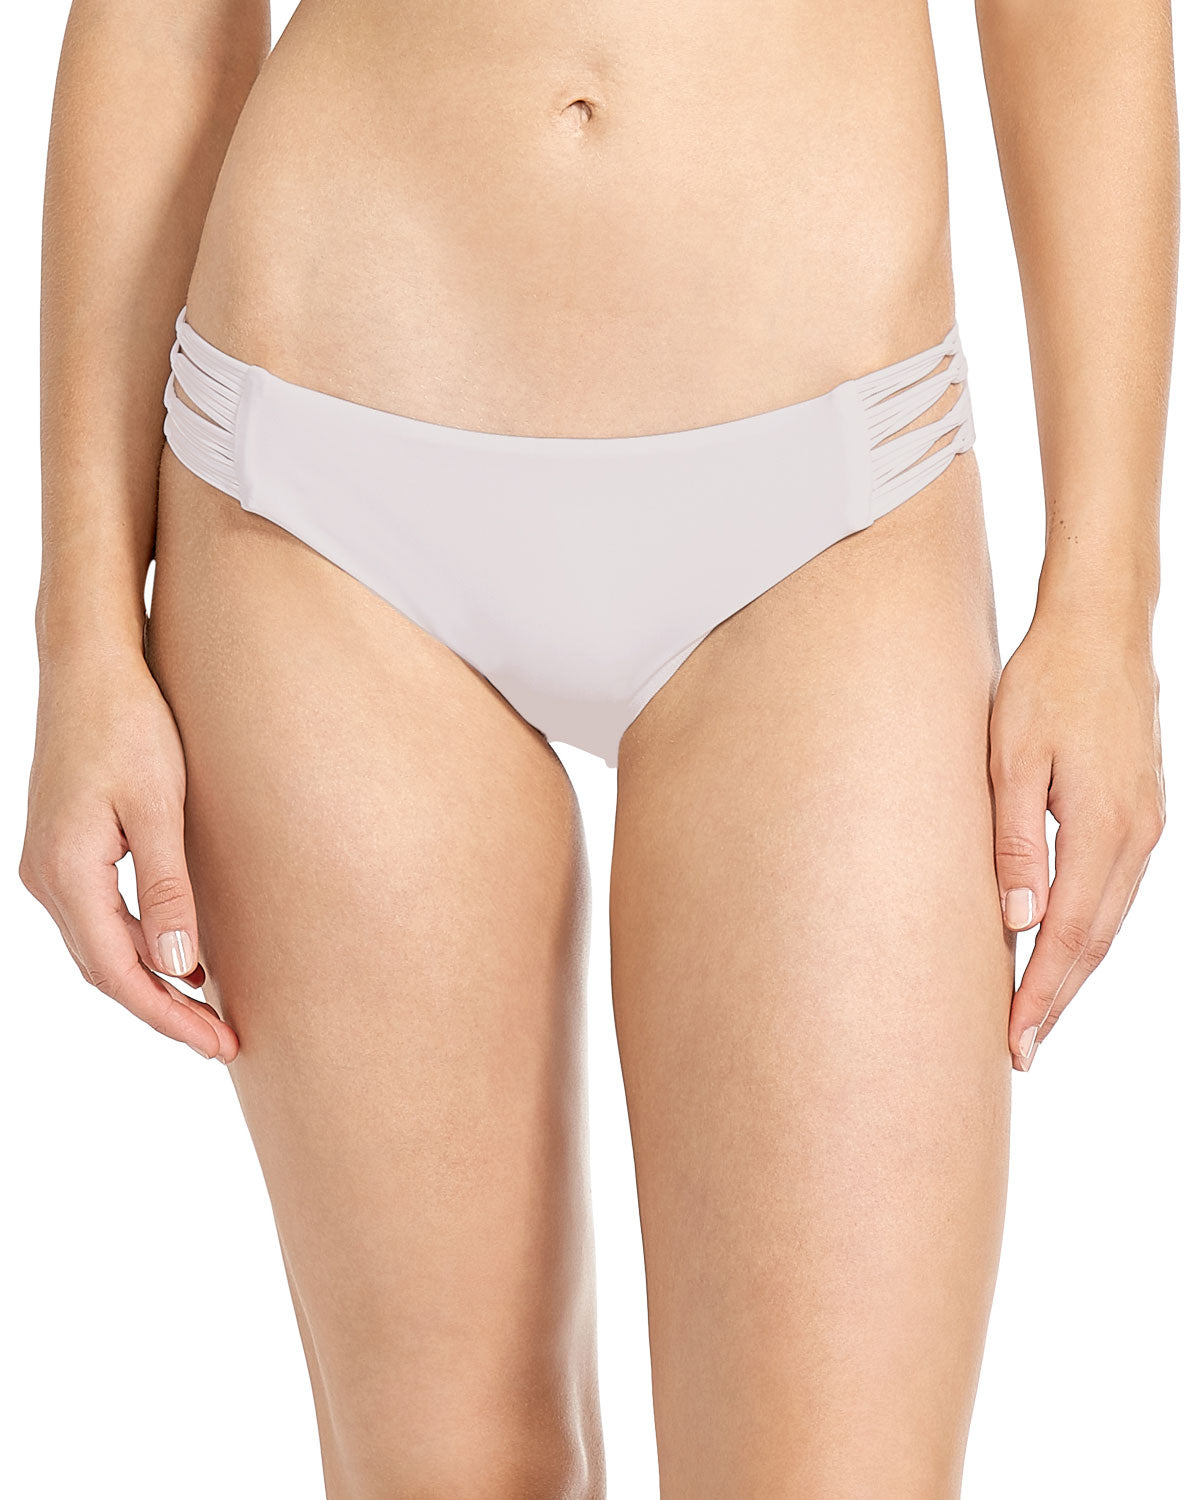 Smoothies Ruby Swim Bottom - White